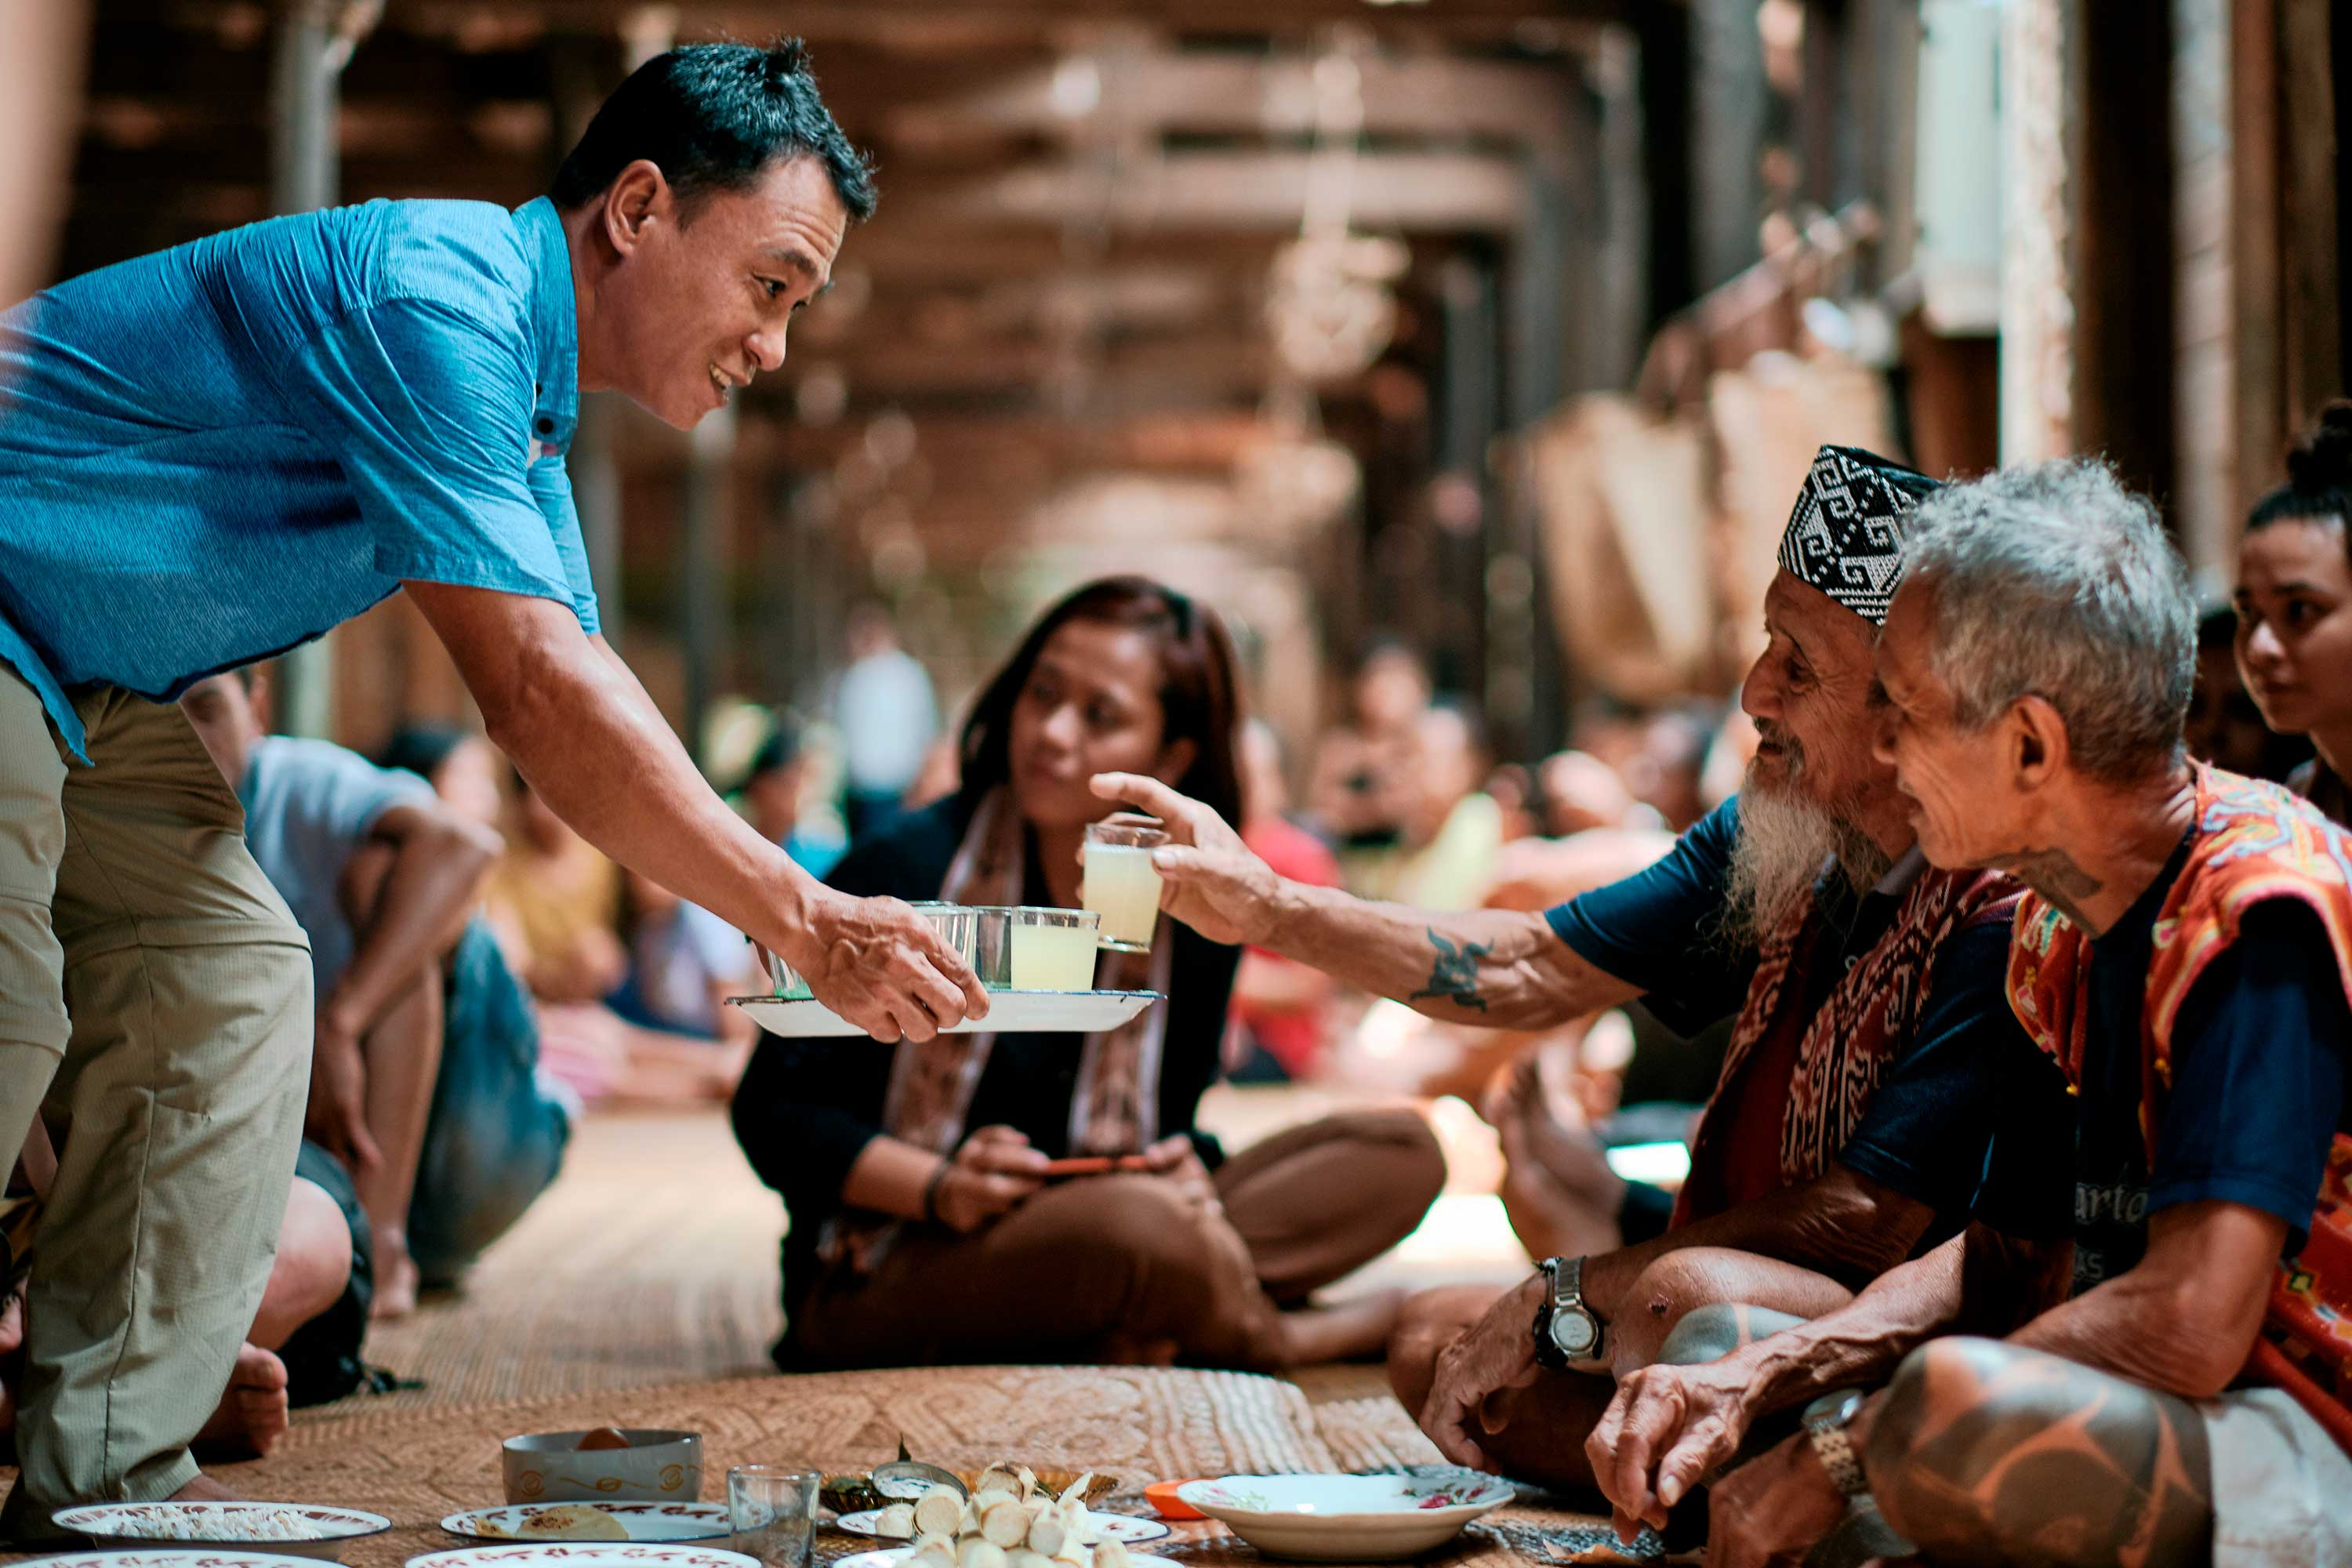 A man in a blue button-down shirt serves drinks to Sungai Utik elder Apai Janggut and another elder while perched on the floor of the longhouse main room.